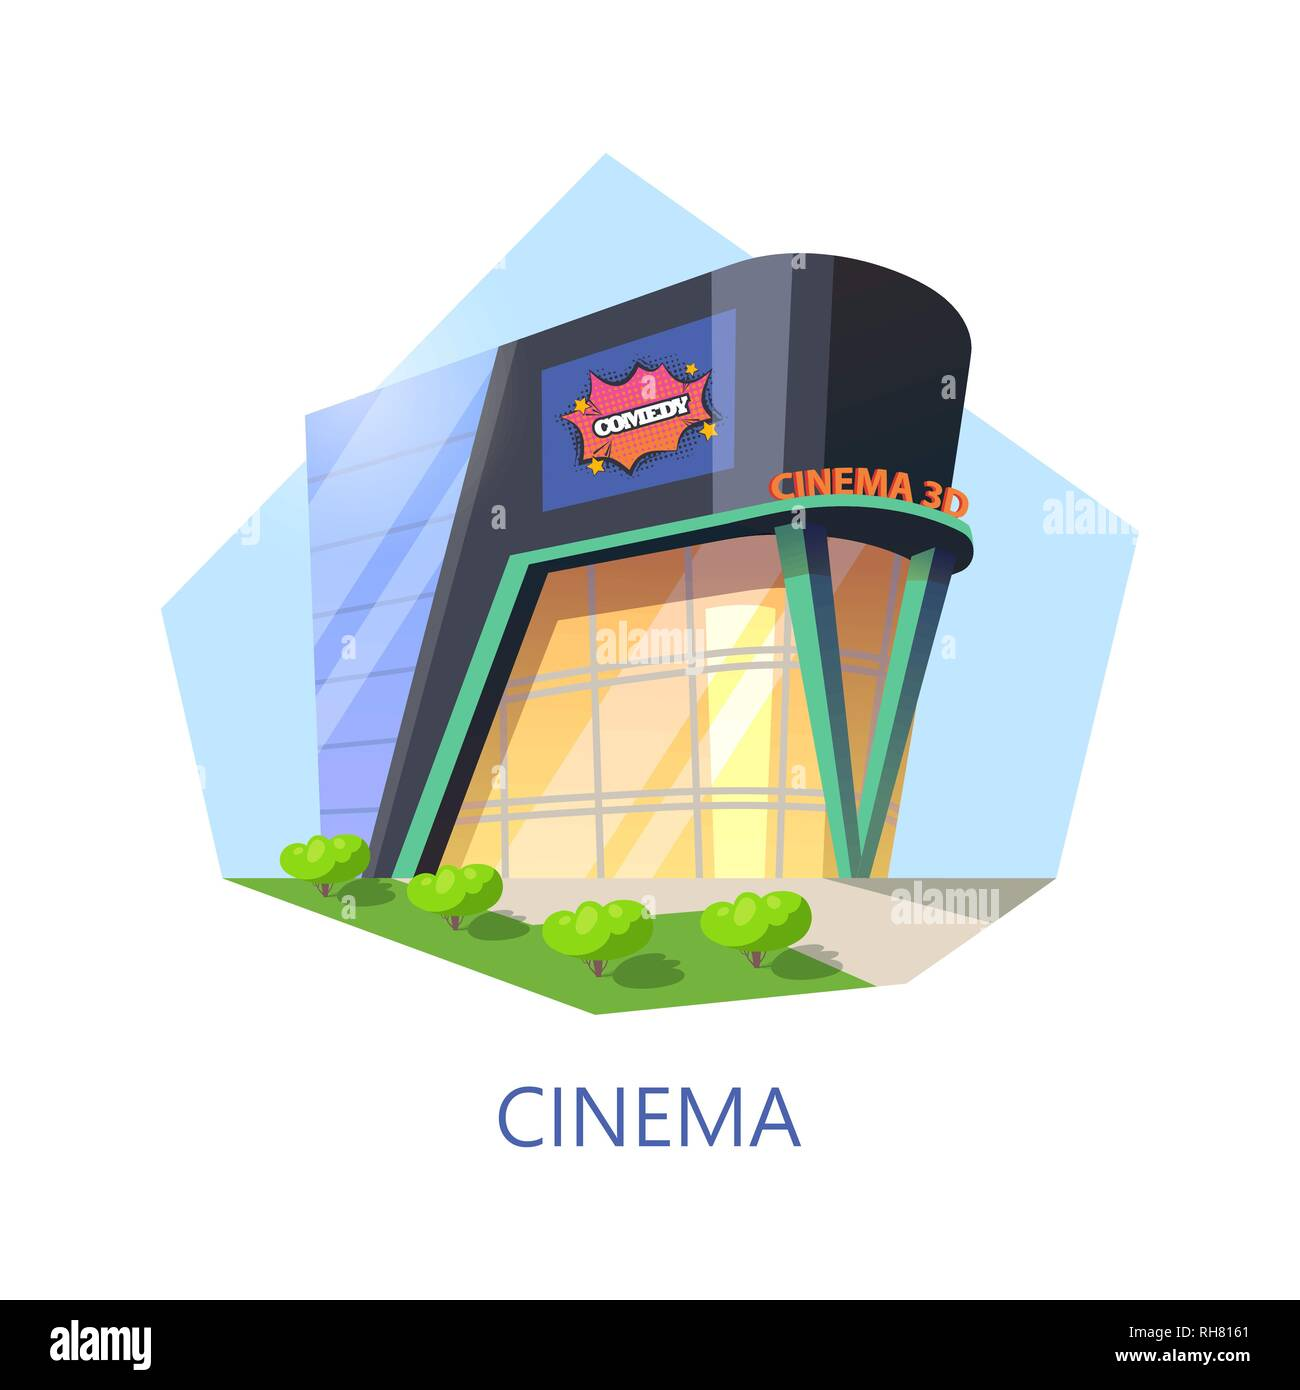 Cinema building for watching film and movie - Stock Image